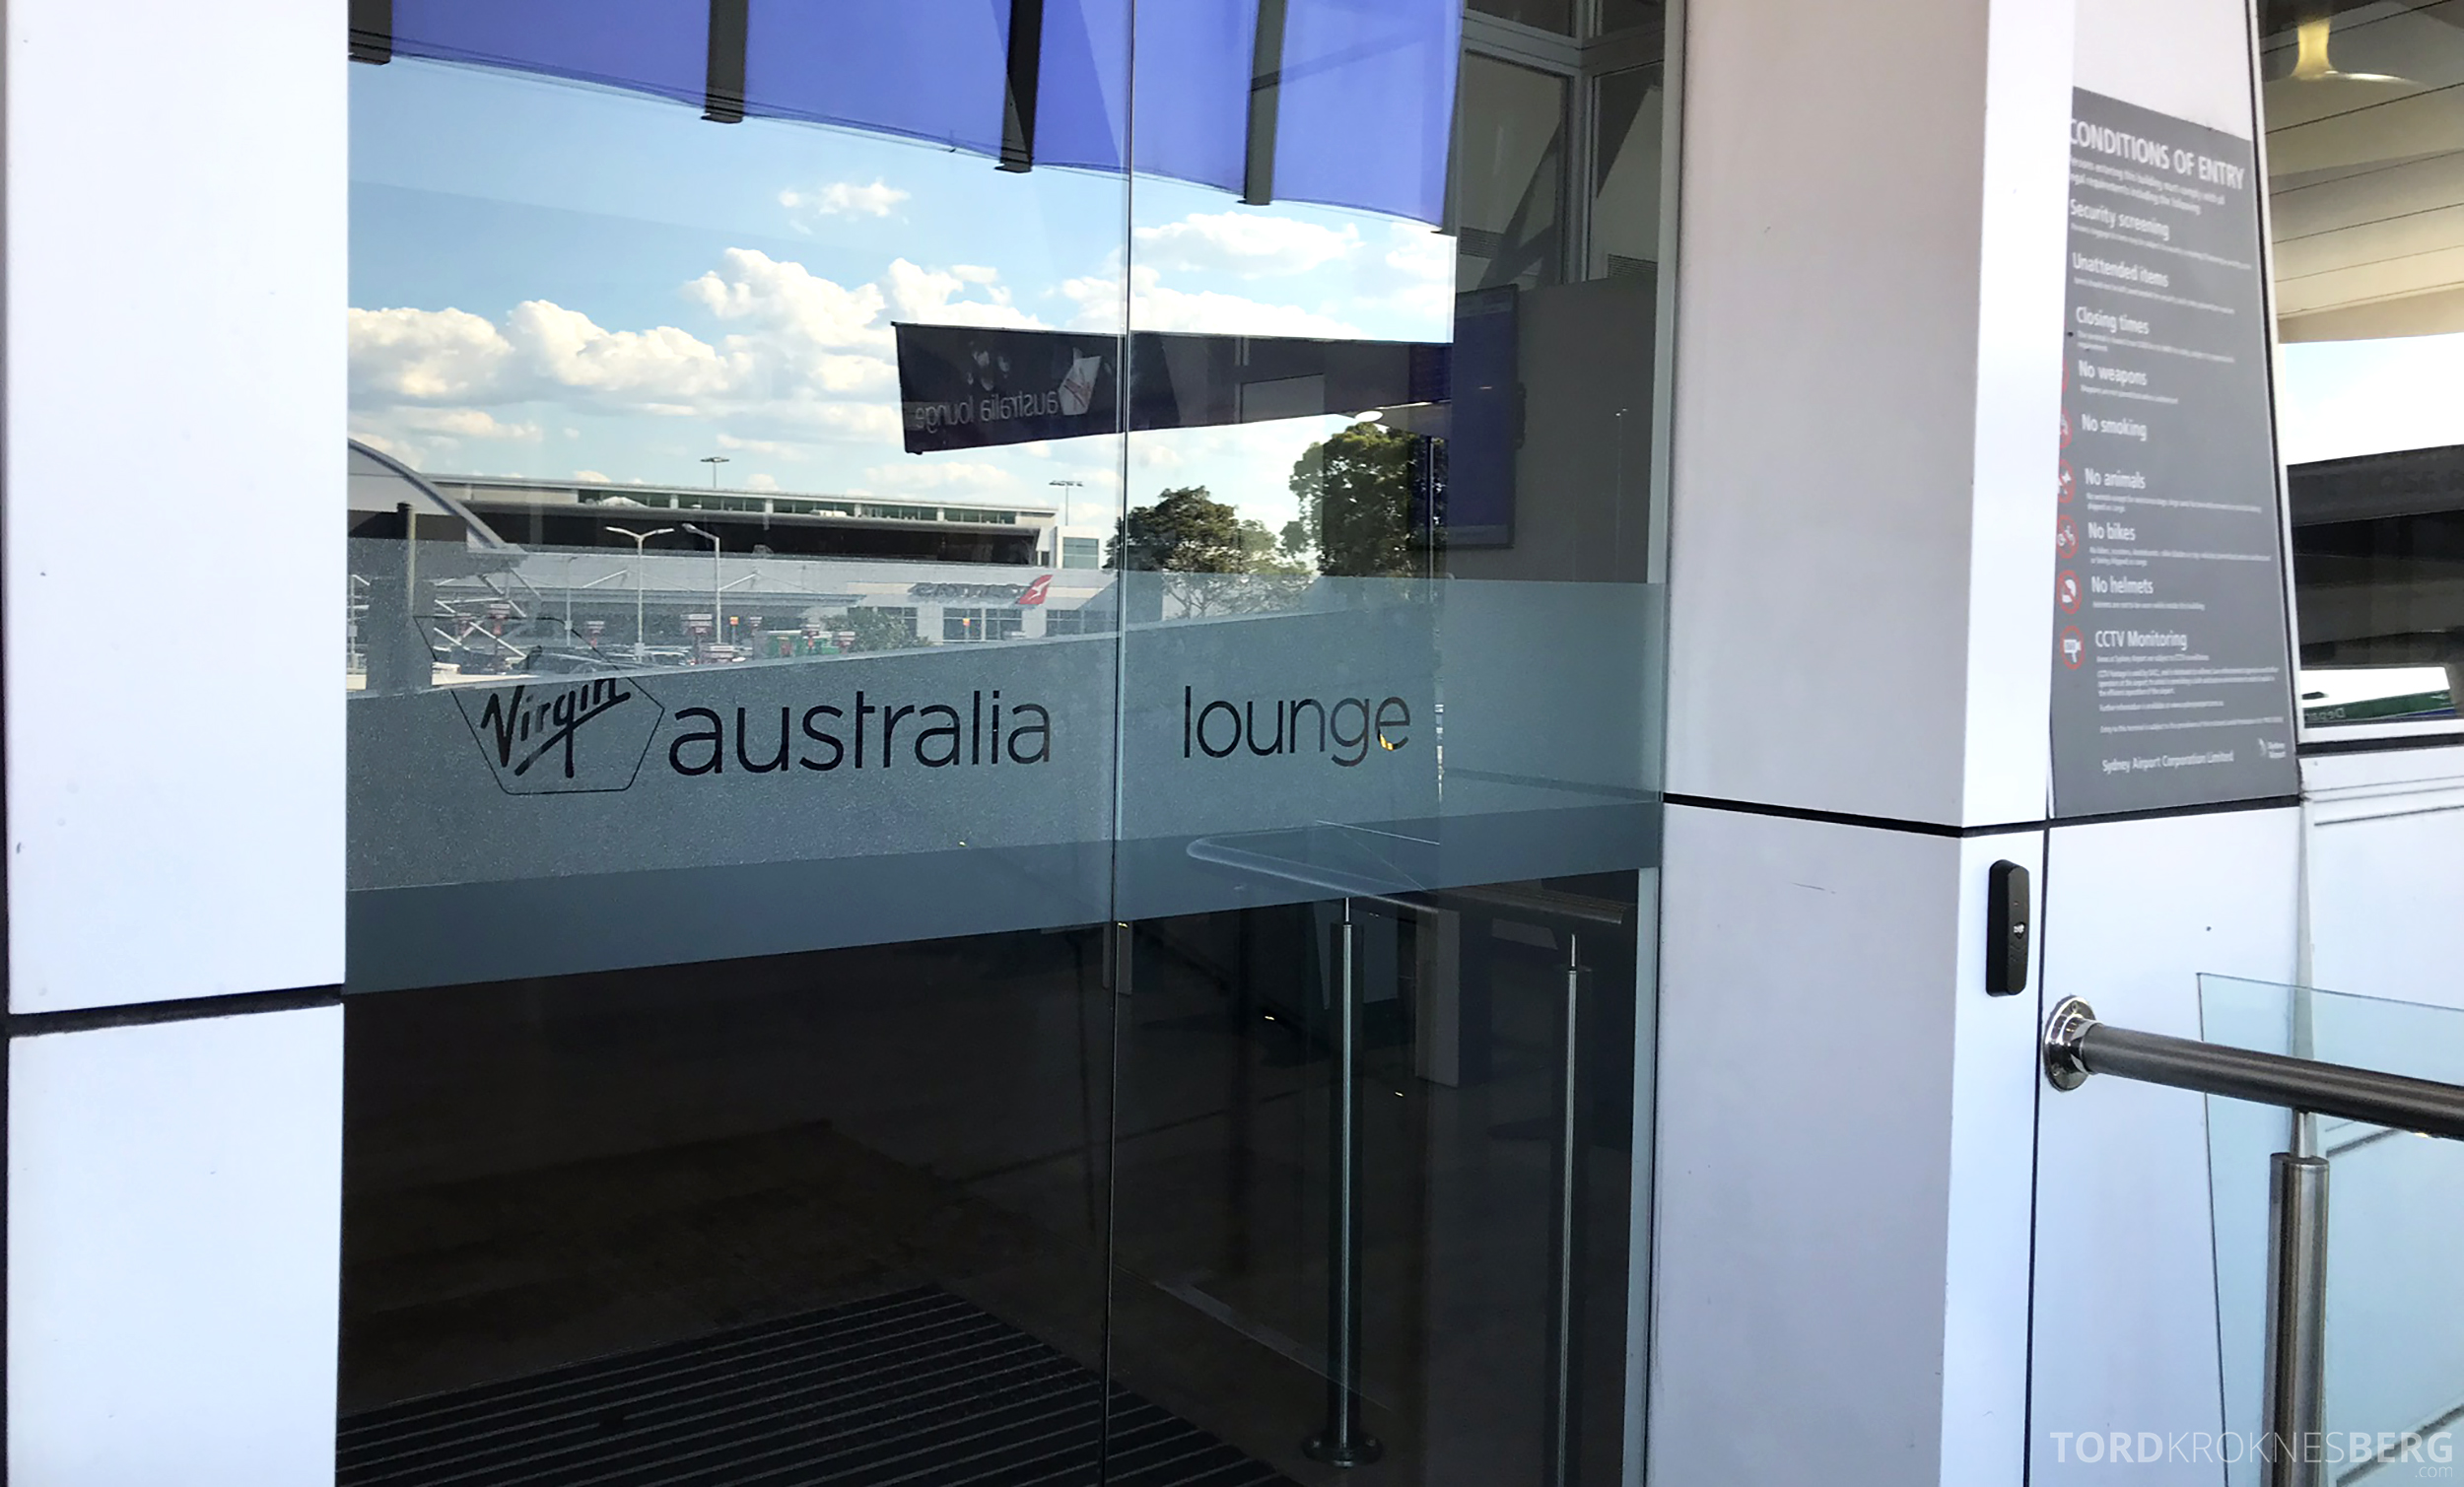 Virgin Australia Business Class Sydney Brisbane lounge